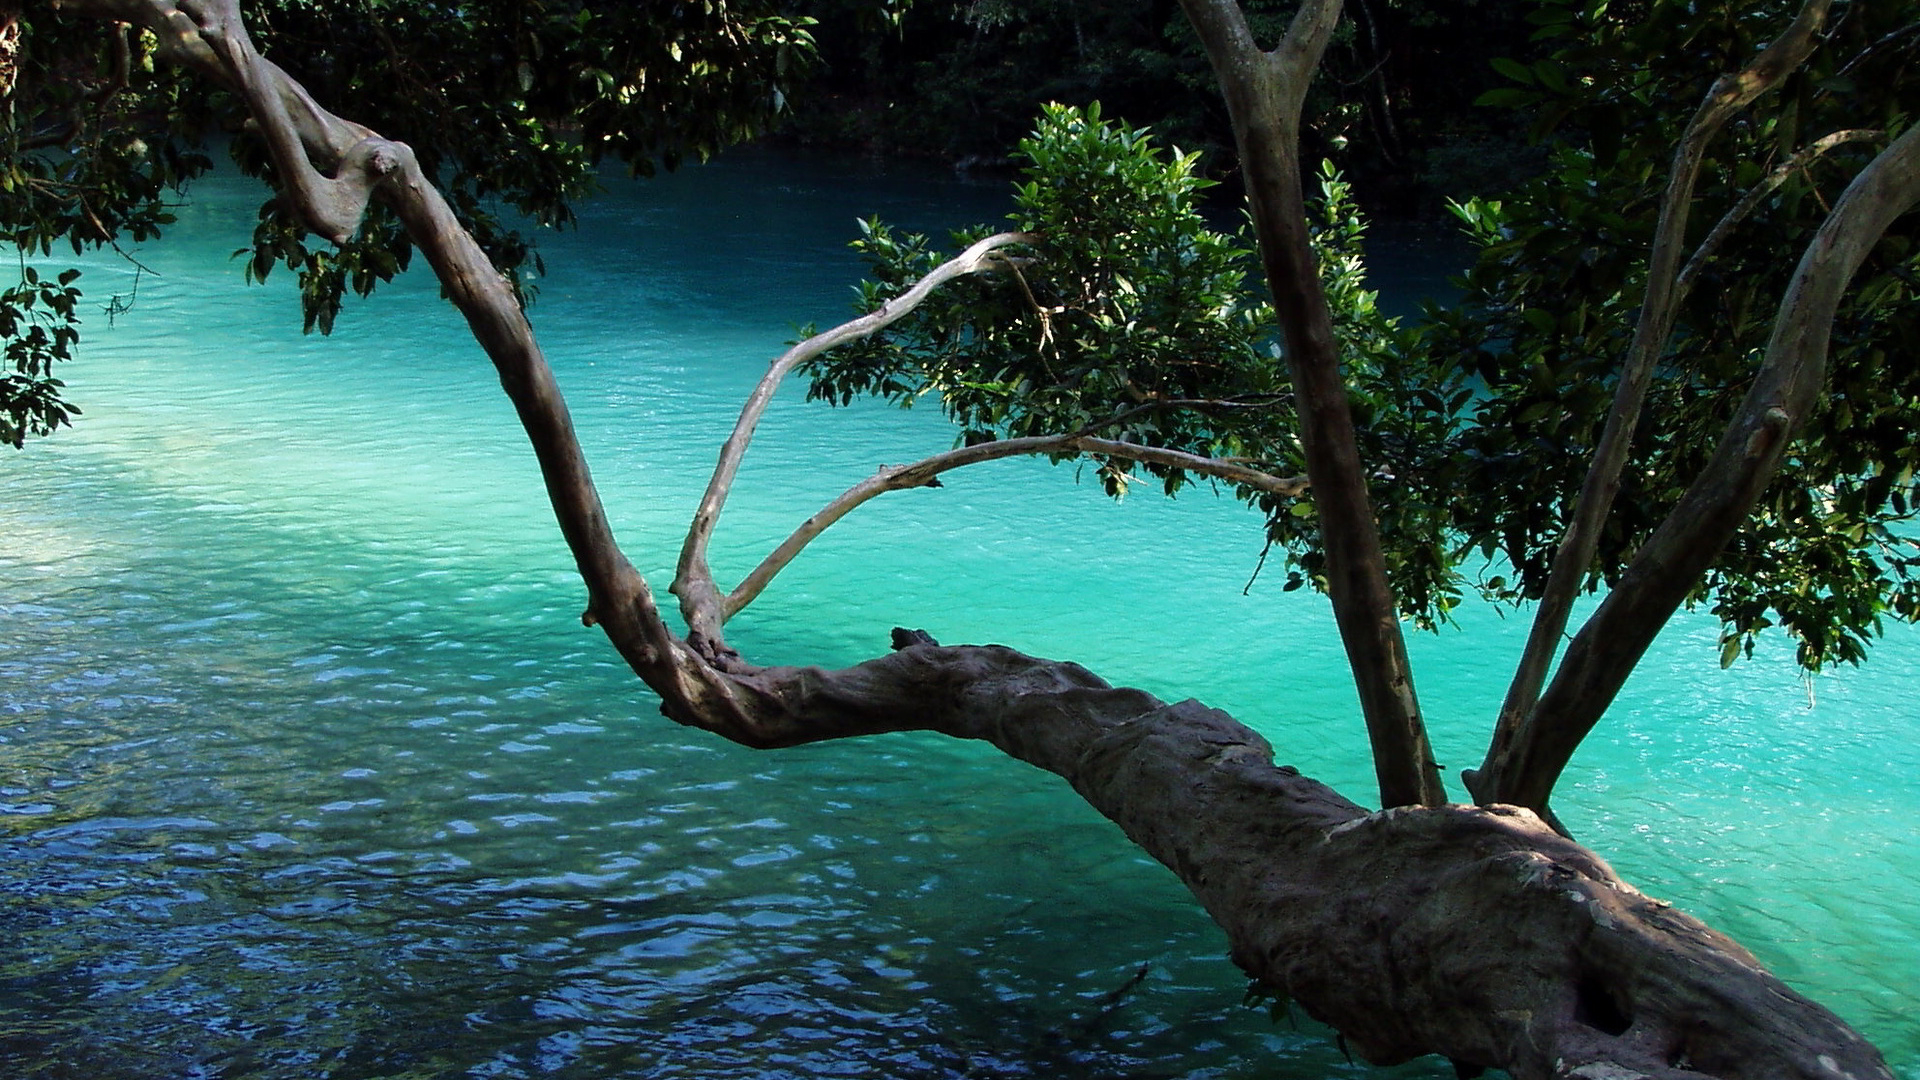 Tree branch over water